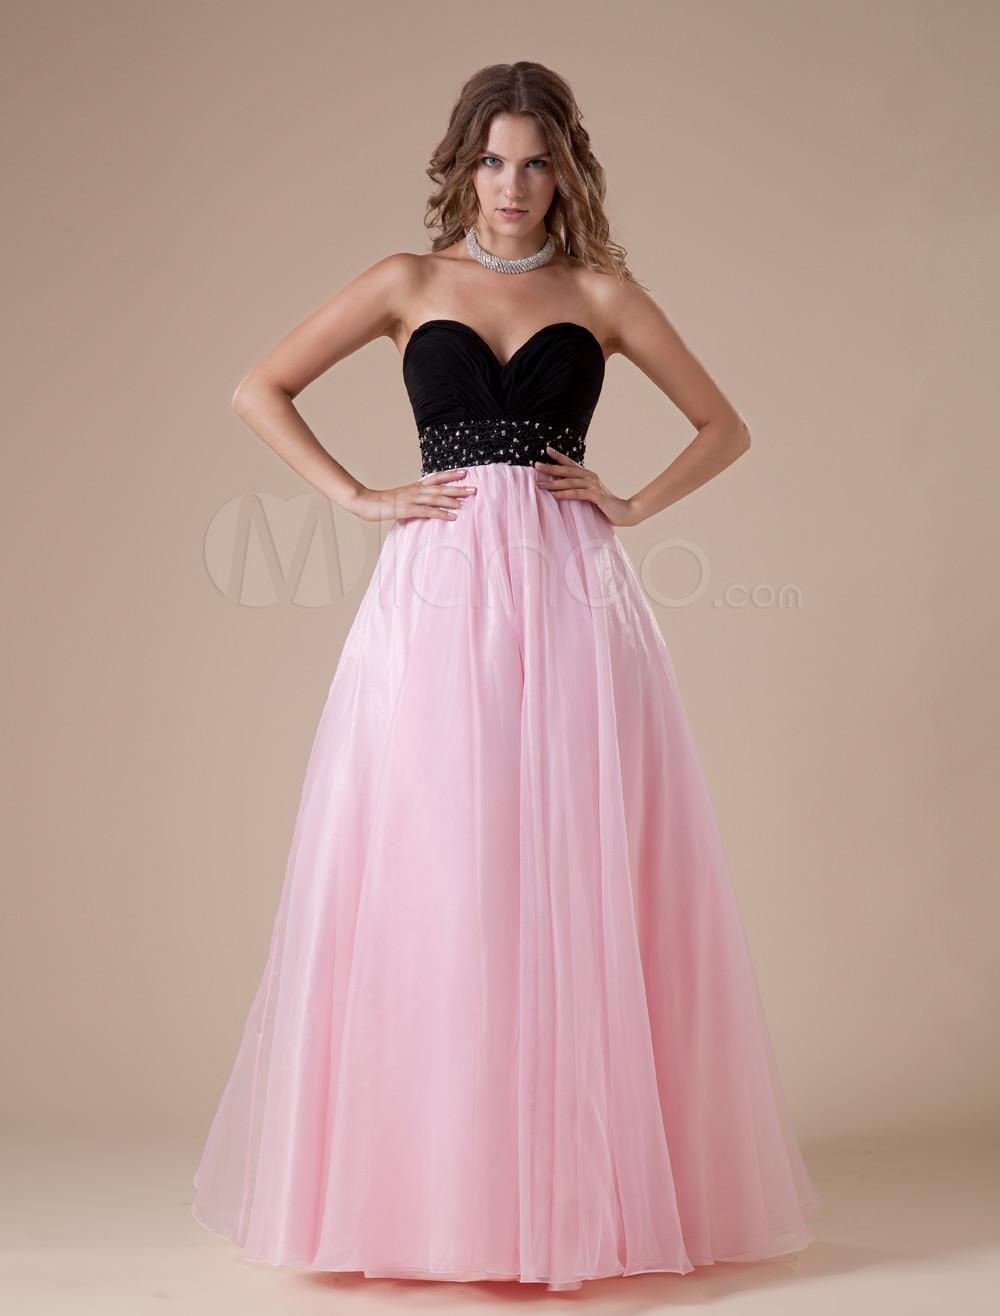 Plus Size Prom Dresses - Page 274 of 509 - Short Prom Dresses Boohoo